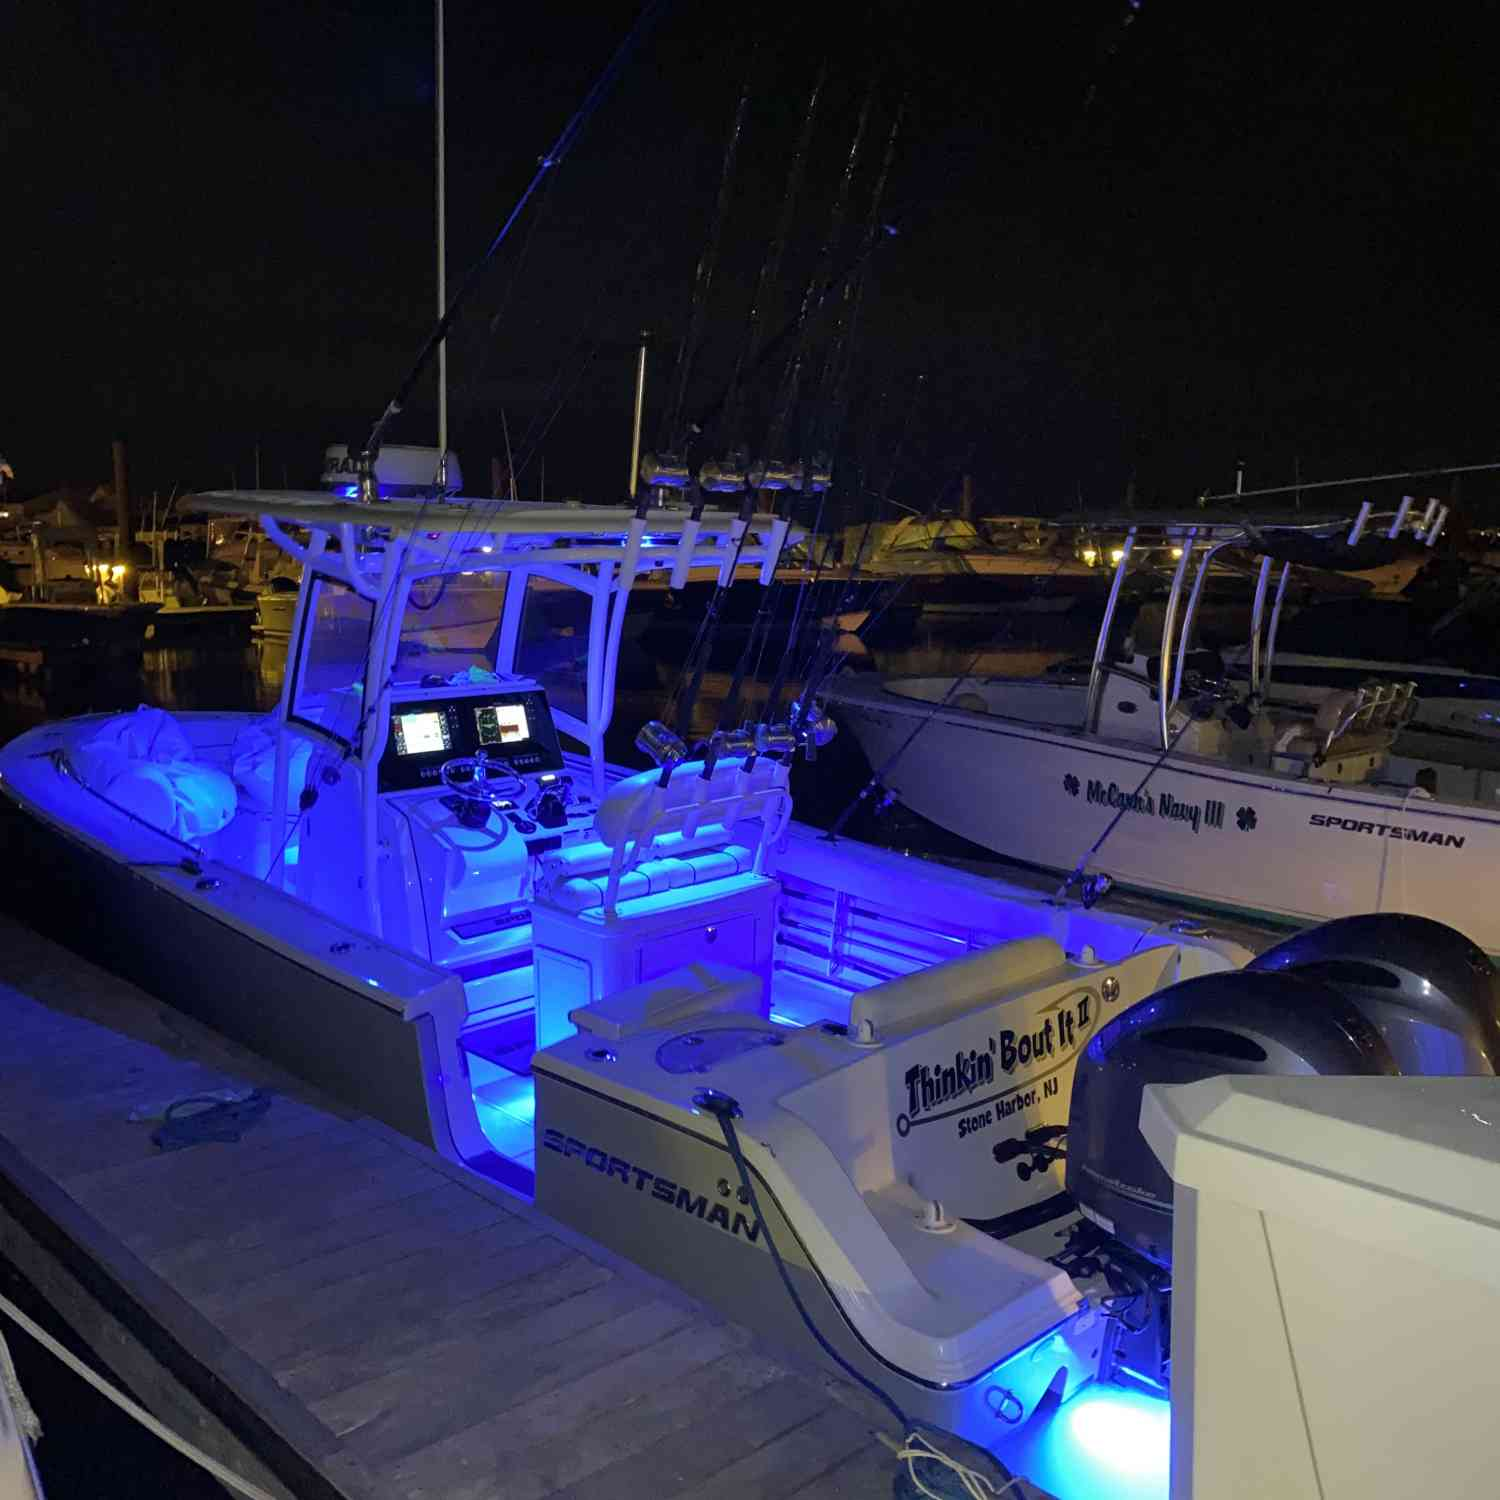 Title: Time to go deep - On board their Sportsman Open 252 Center Console - Location: Stone Harbor Marina. Participating in the Photo Contest #SportsmanJuly2020